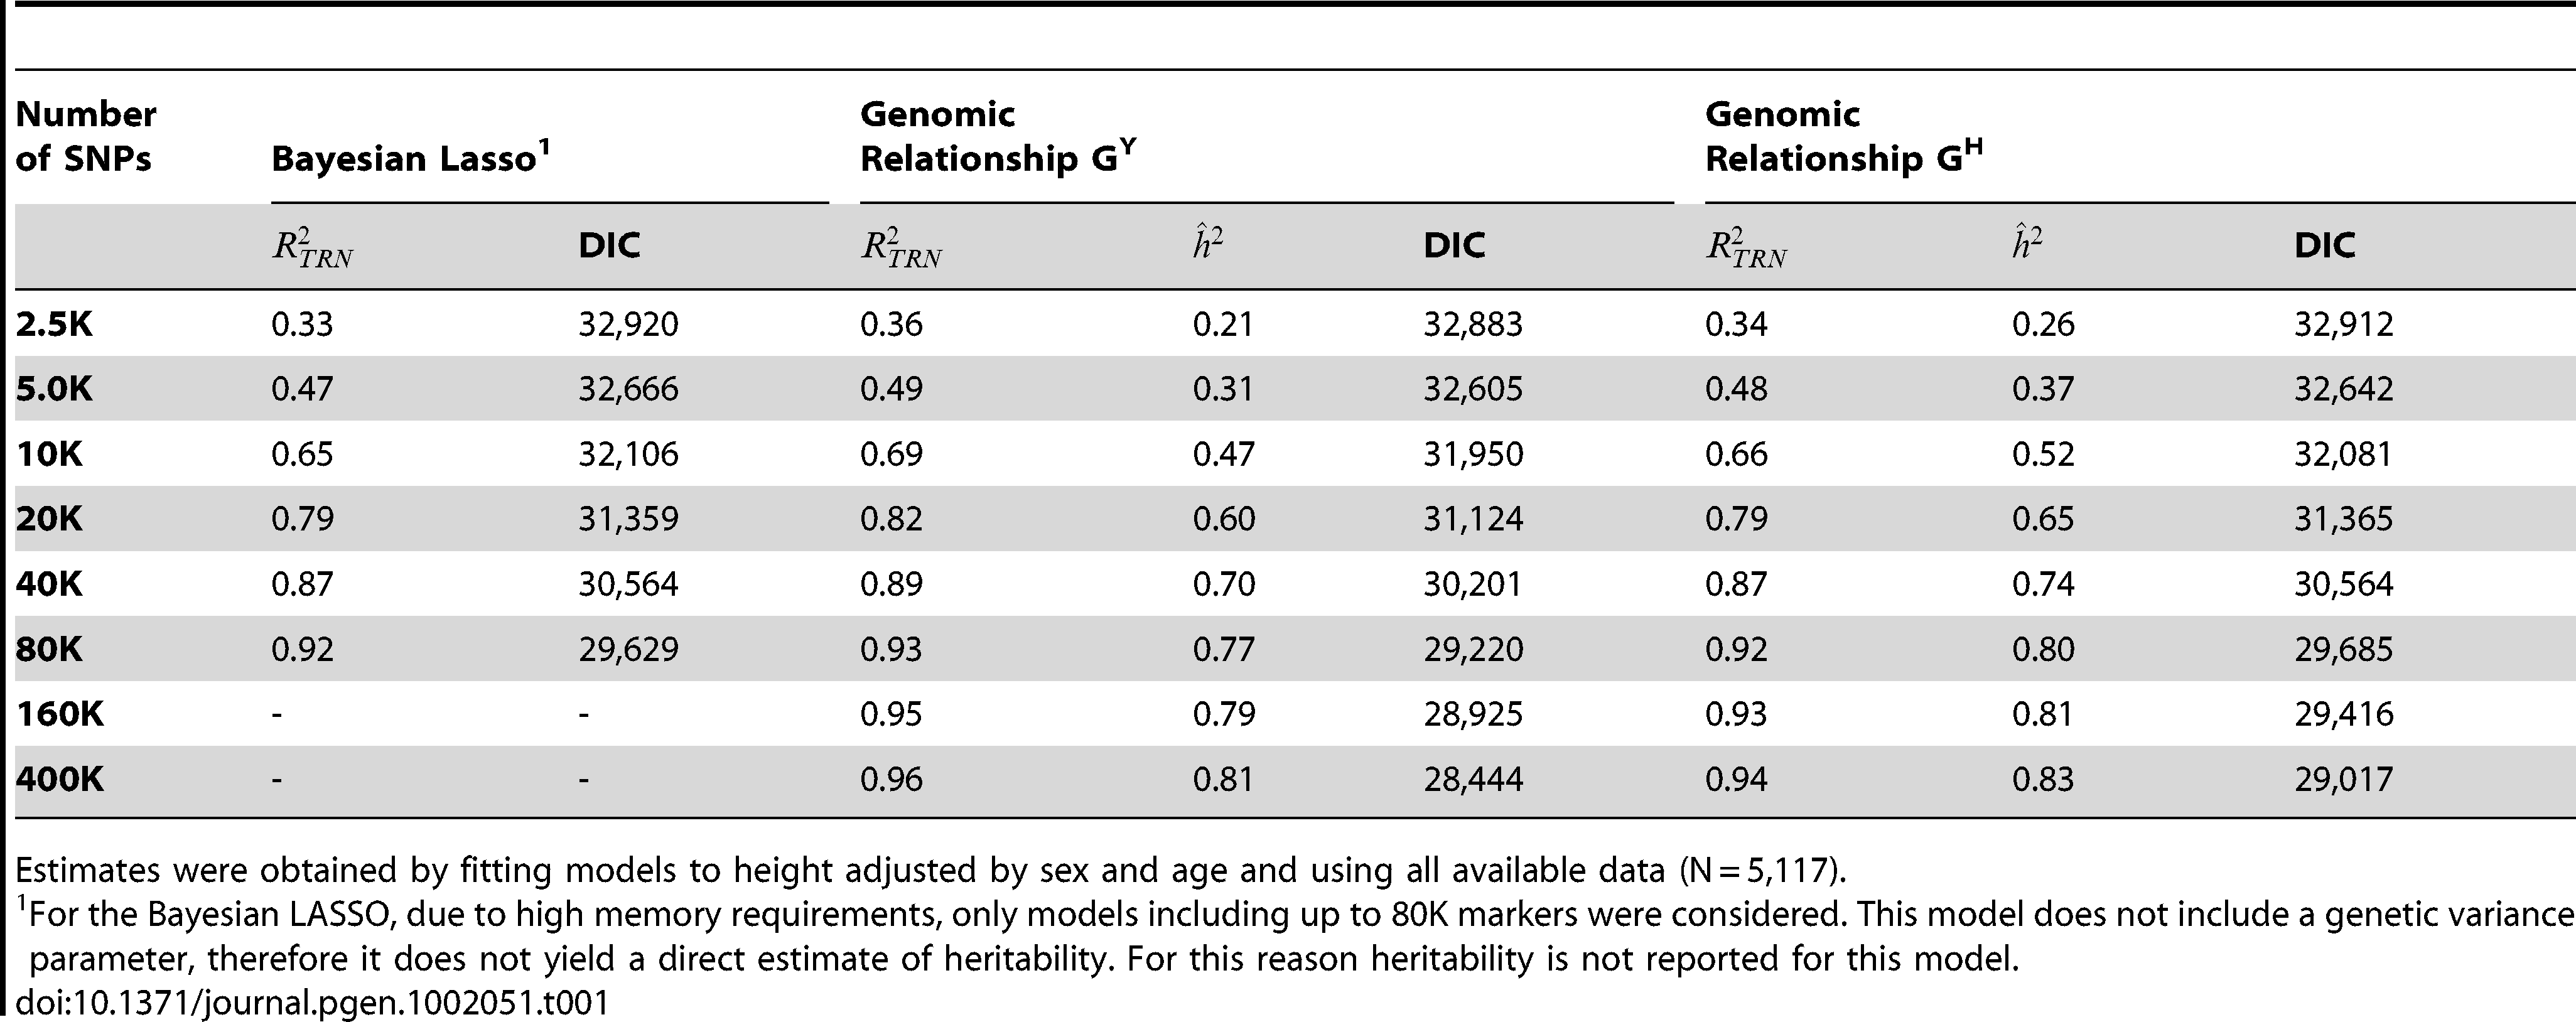 R-squared statistic measured in the data used to train the model (), estimated posterior mean of heritability (), and Deviance Information Criterion (DIC) by model and number of SNPs (where K=1,000).